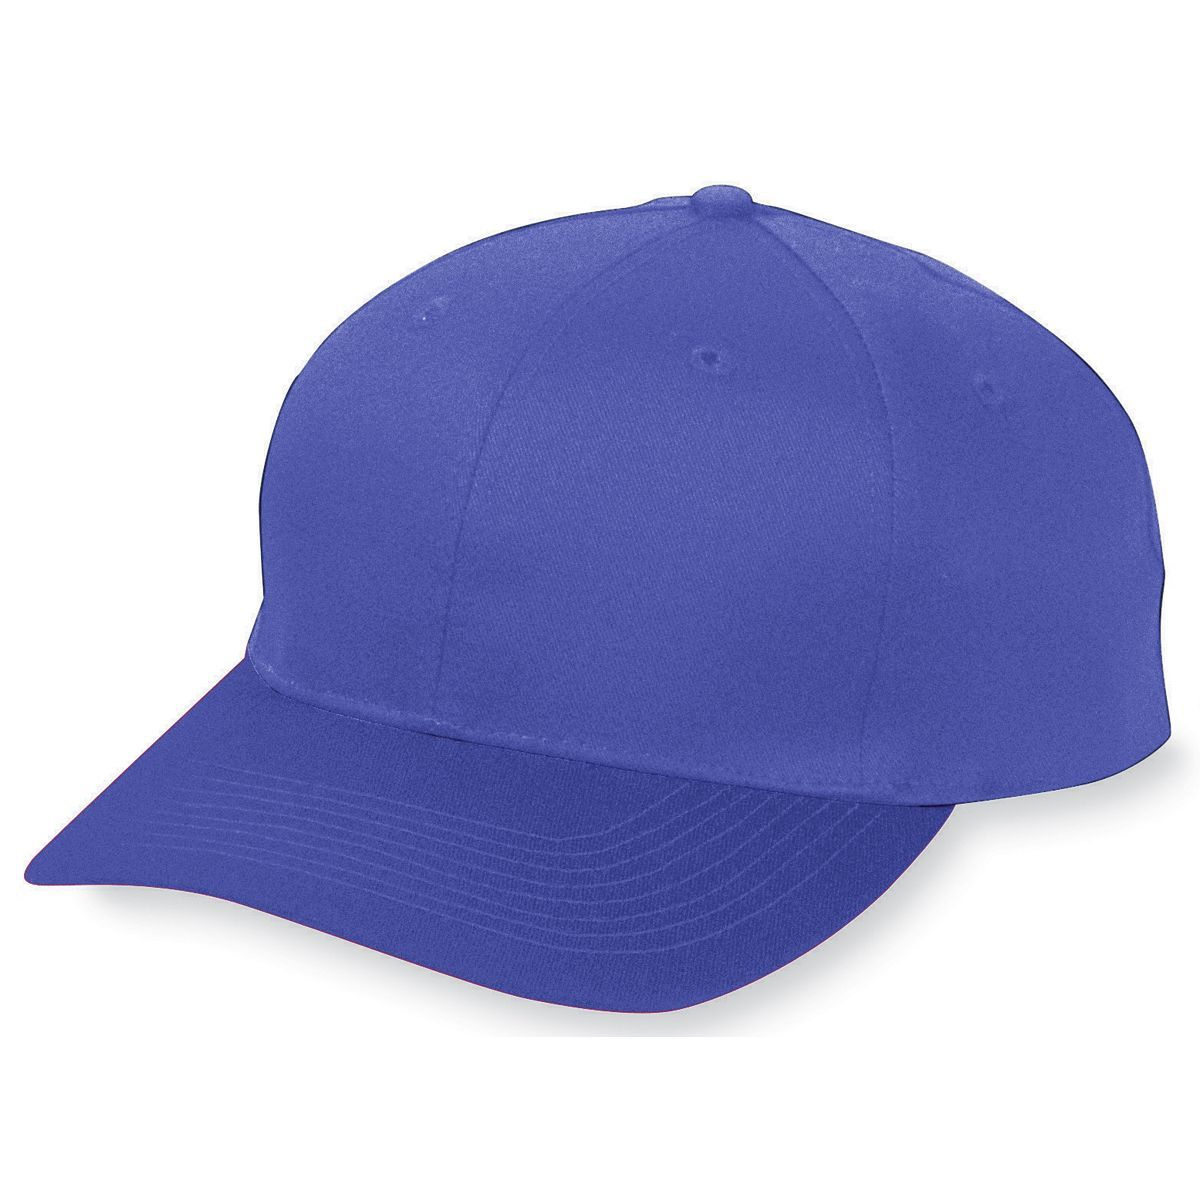 Six-Panel Cotton Twill Low-Profile Cap - PURPLE